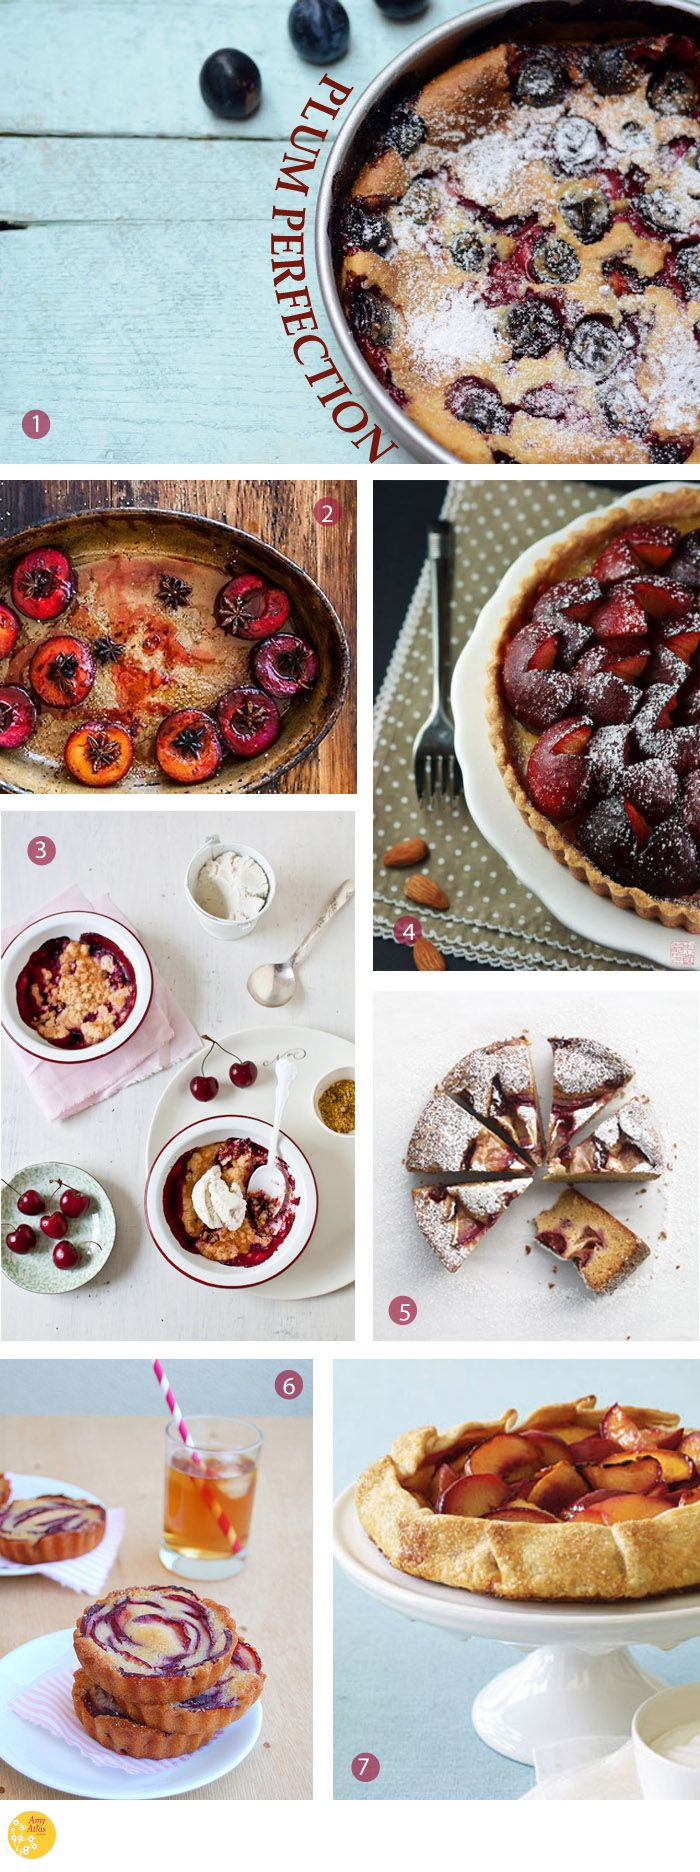 Plum Perfection {18 Plum Desserts to Get Your Juices Flowing} | Amy Atlas Events